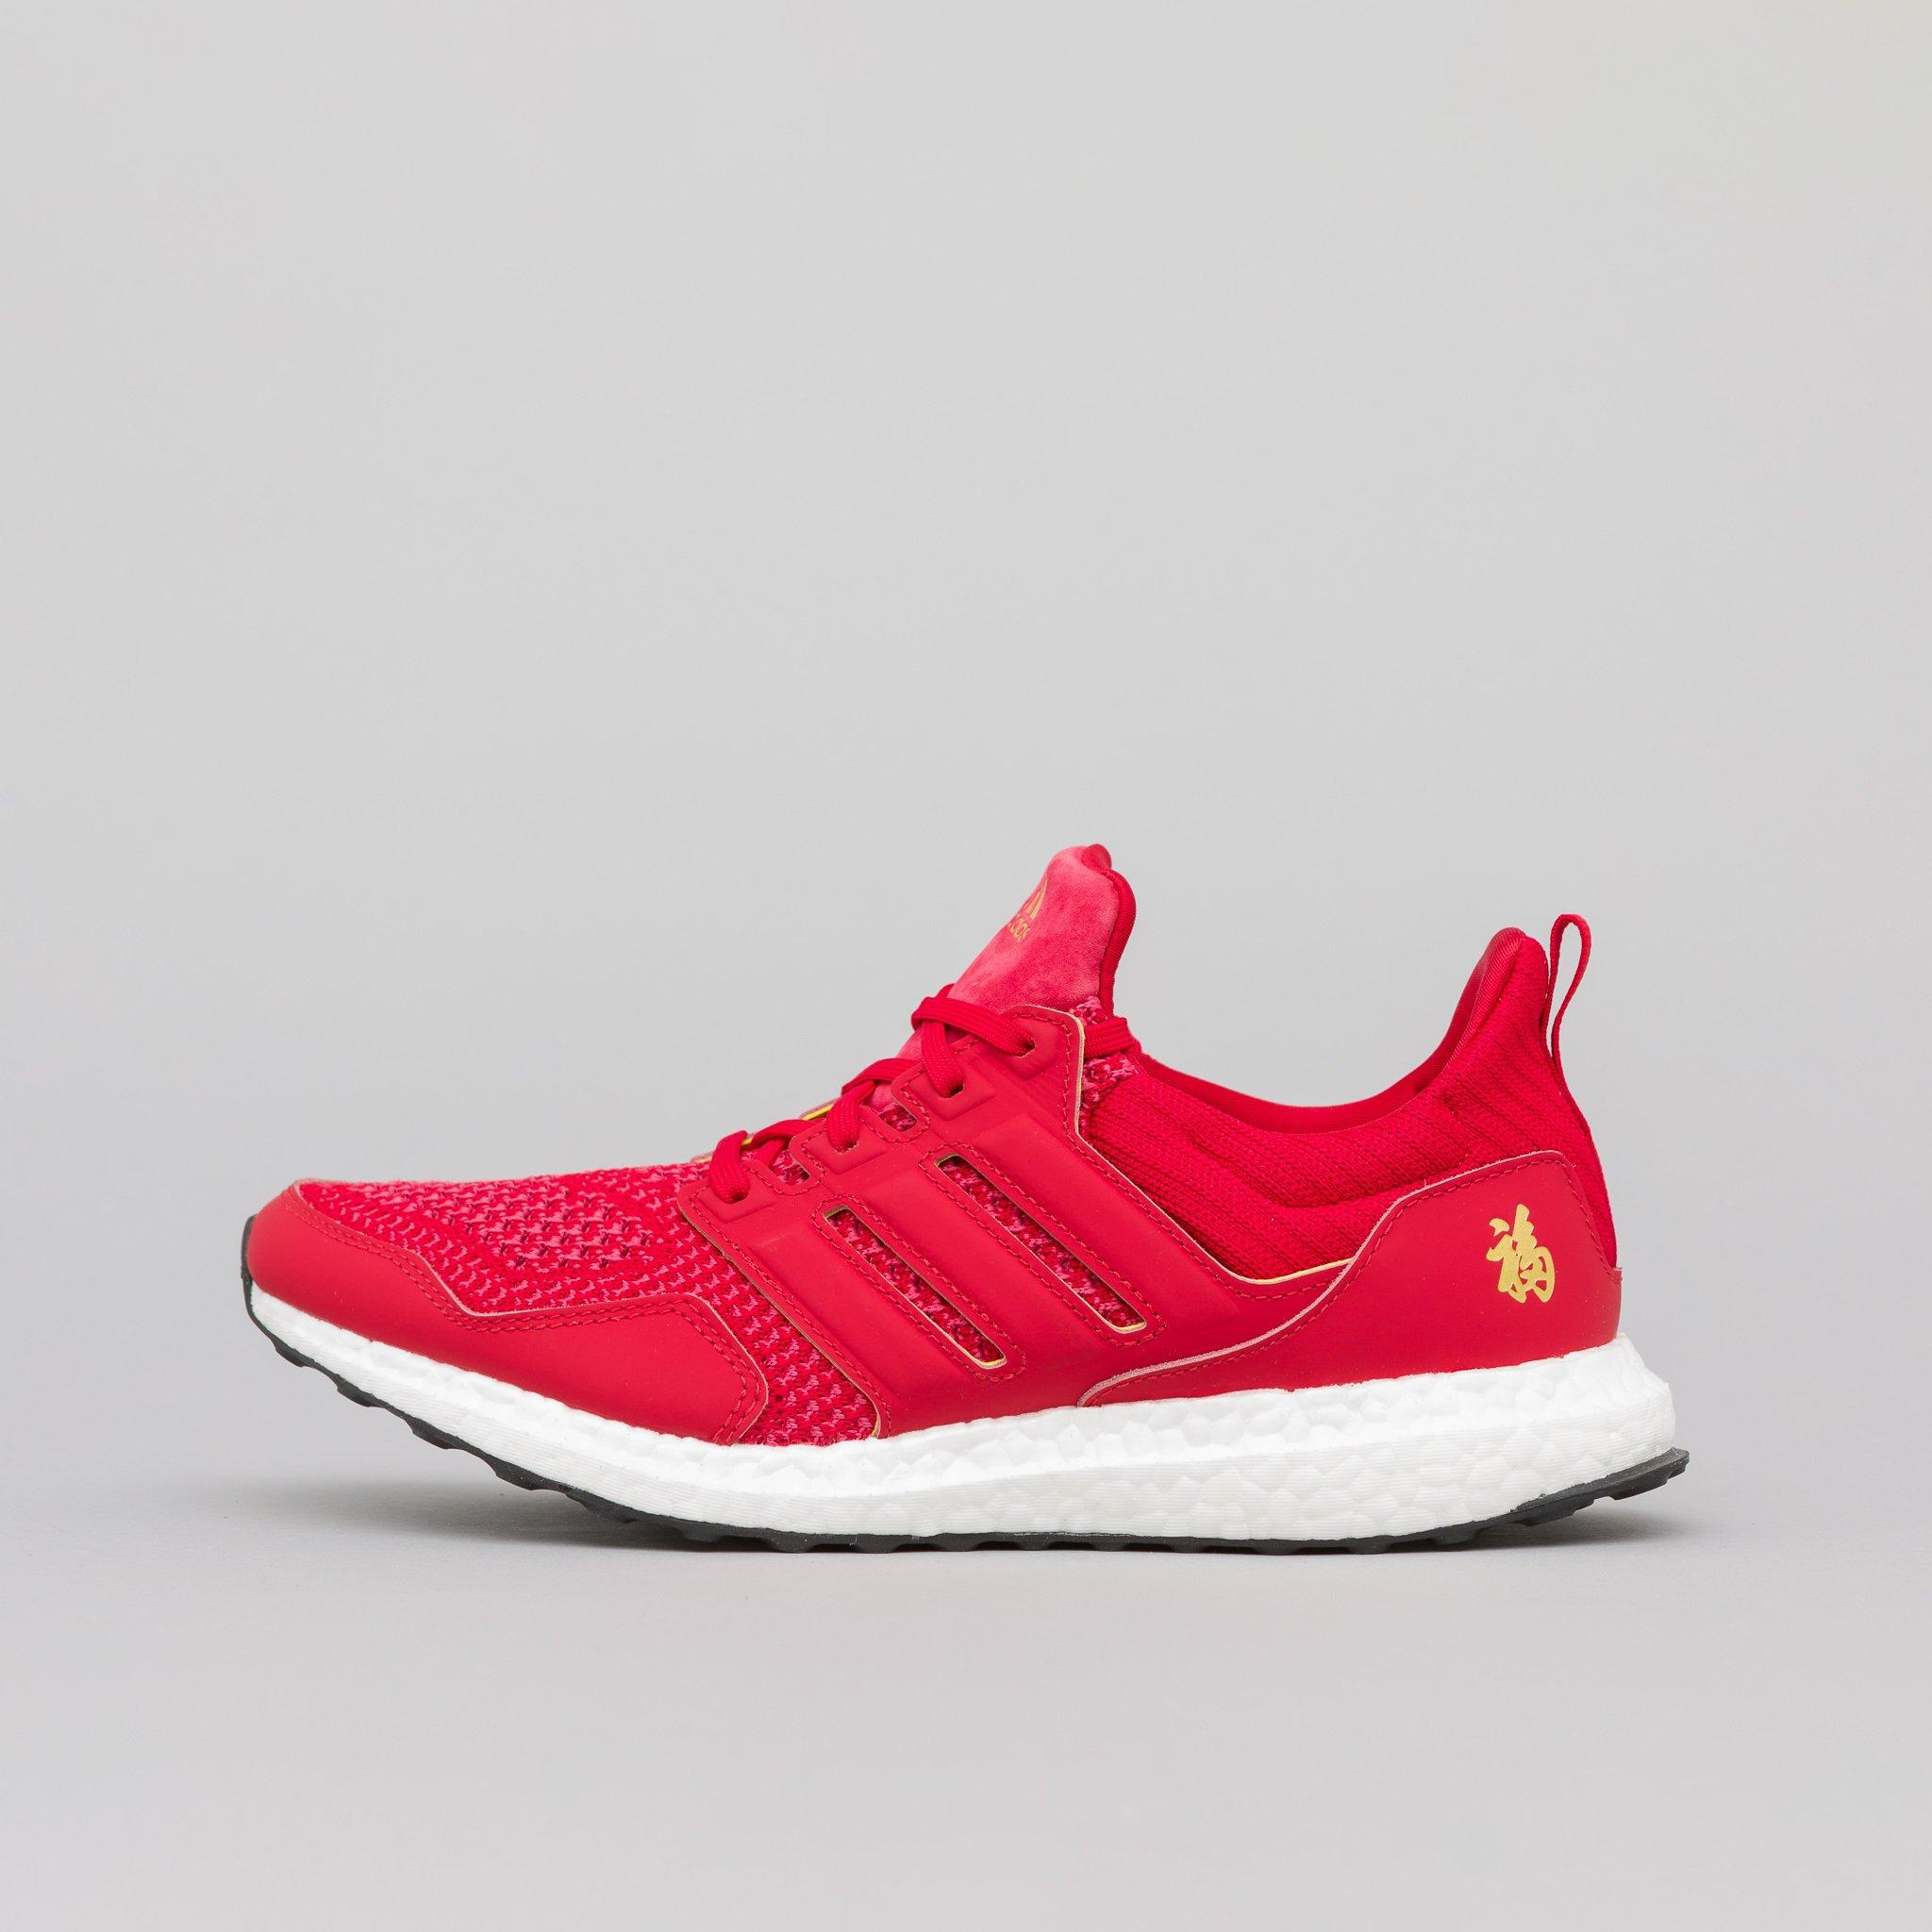 92a39a650c1f7 Lyst - adidas X Eddie Huang Cny Ultraboost In Scarlet in Red for Men